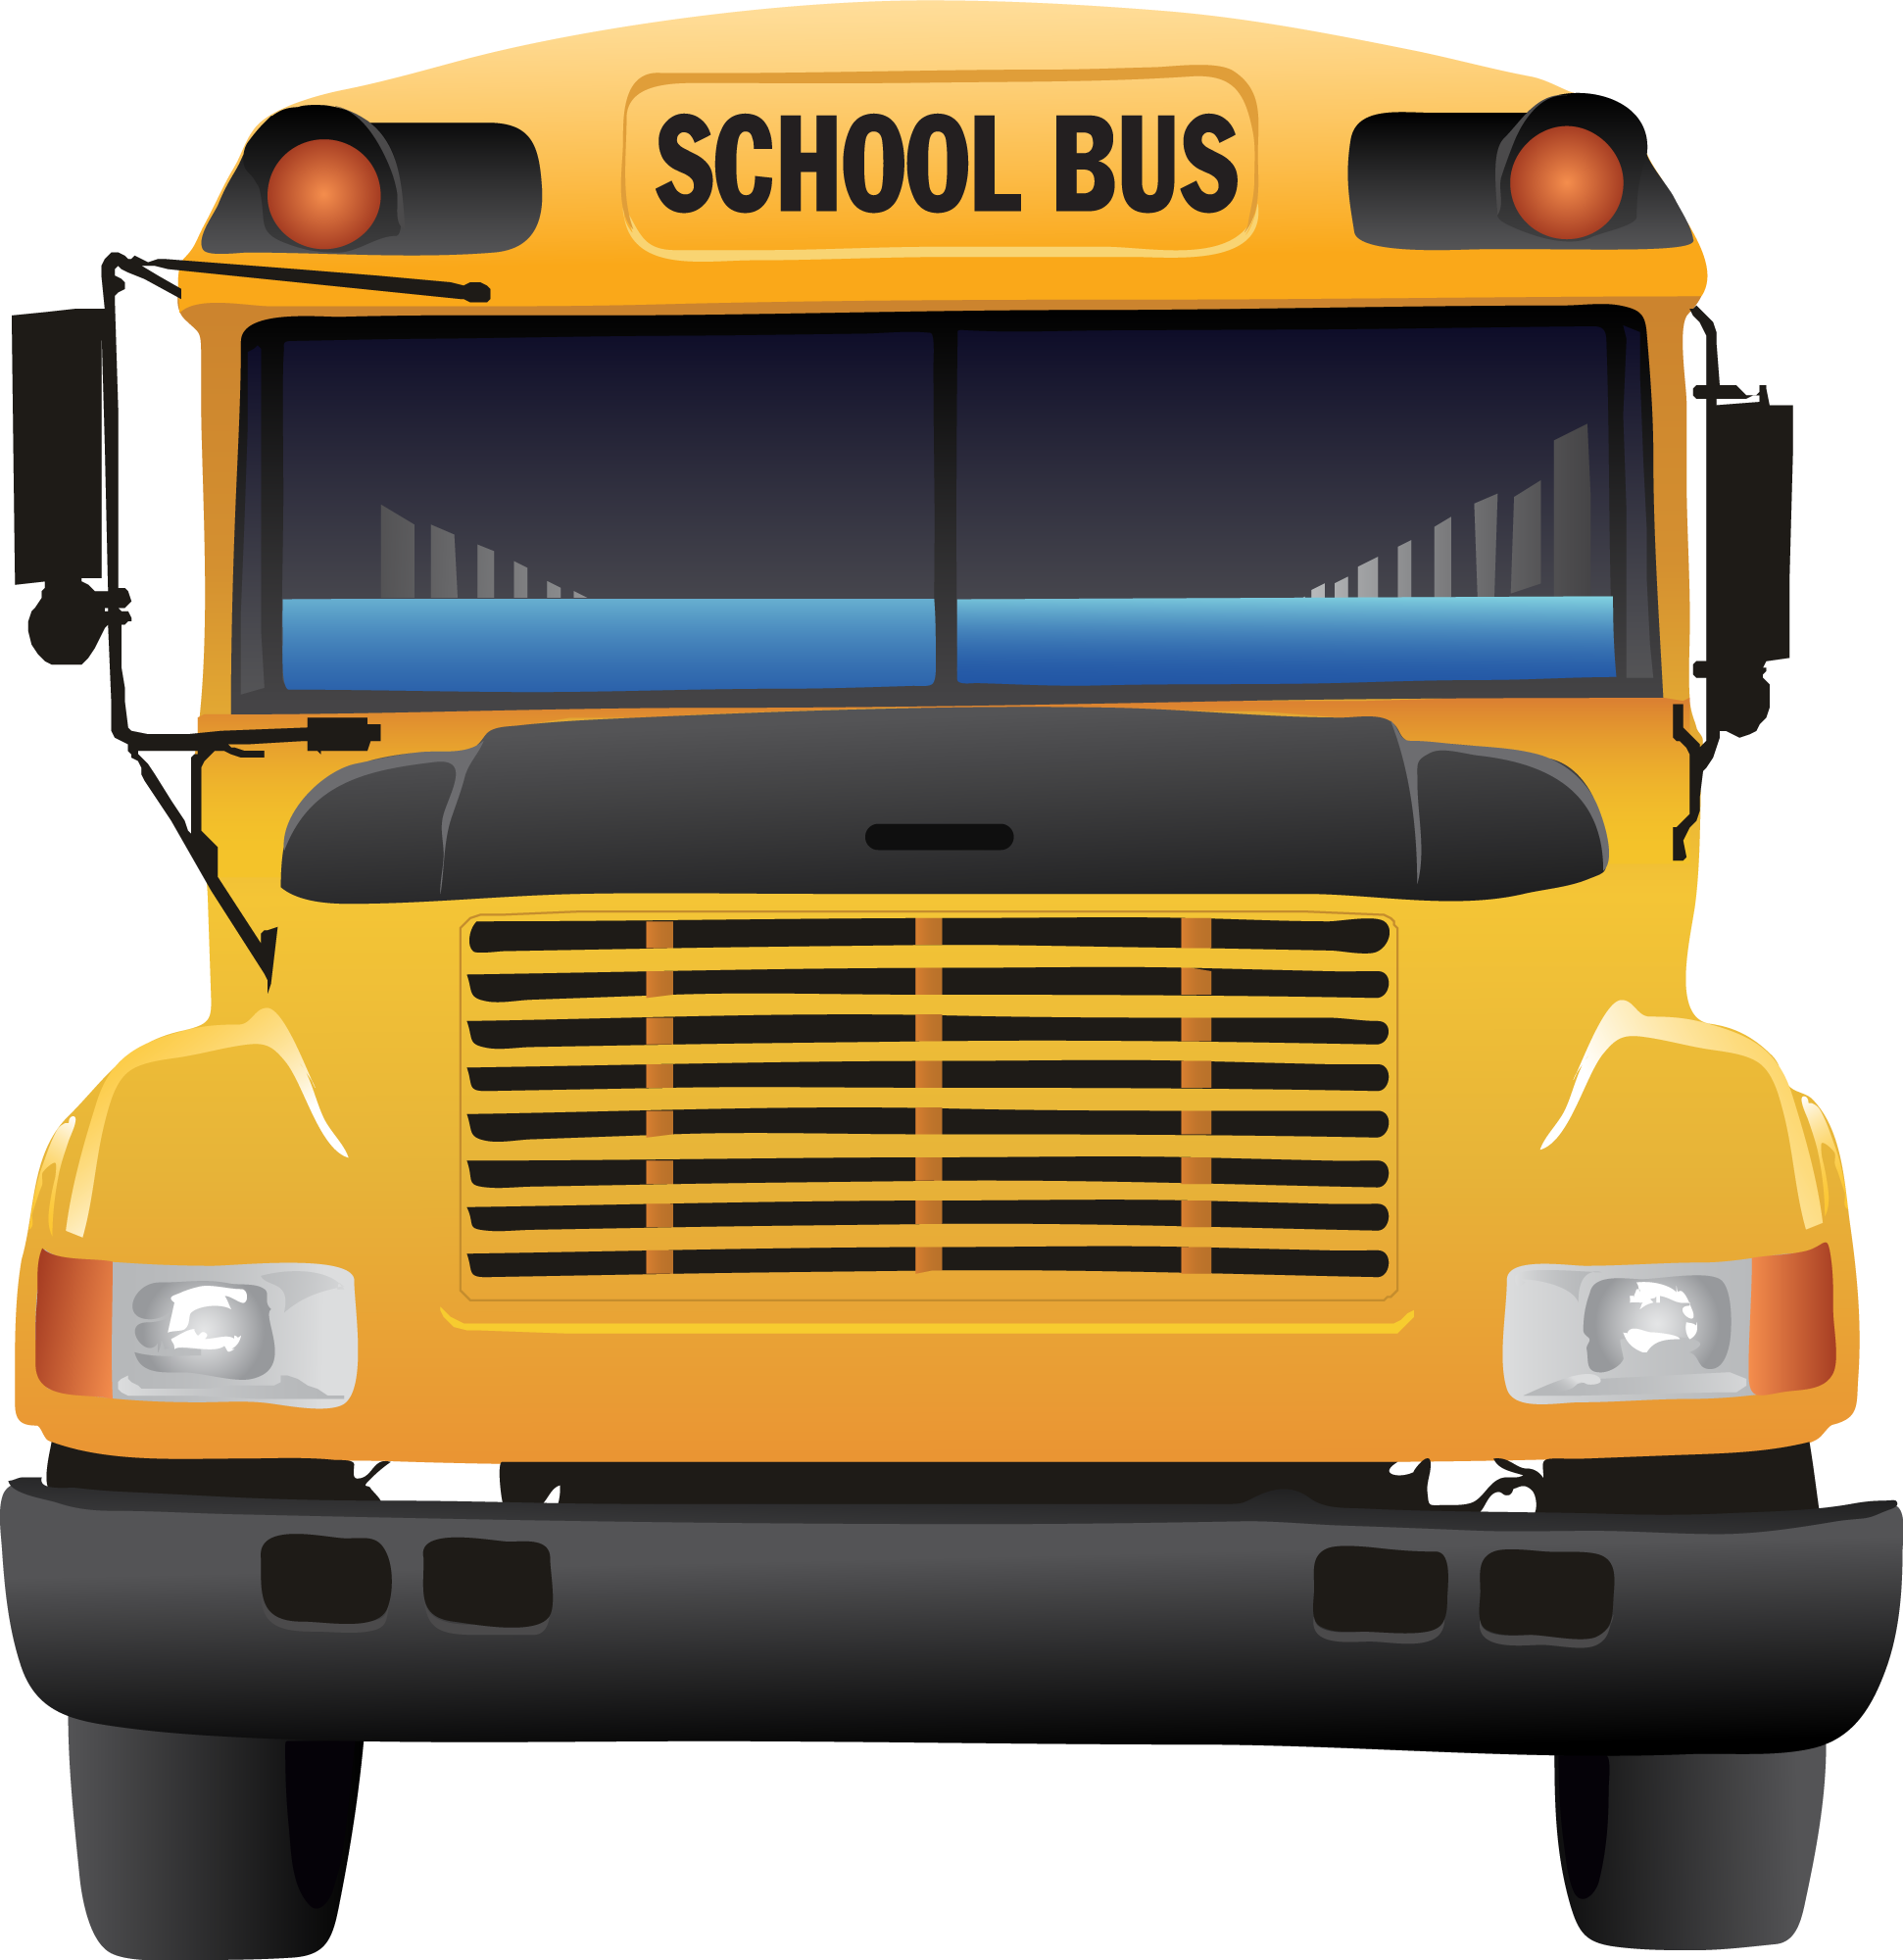 School Bus Safety Clipart - Clipart Kid